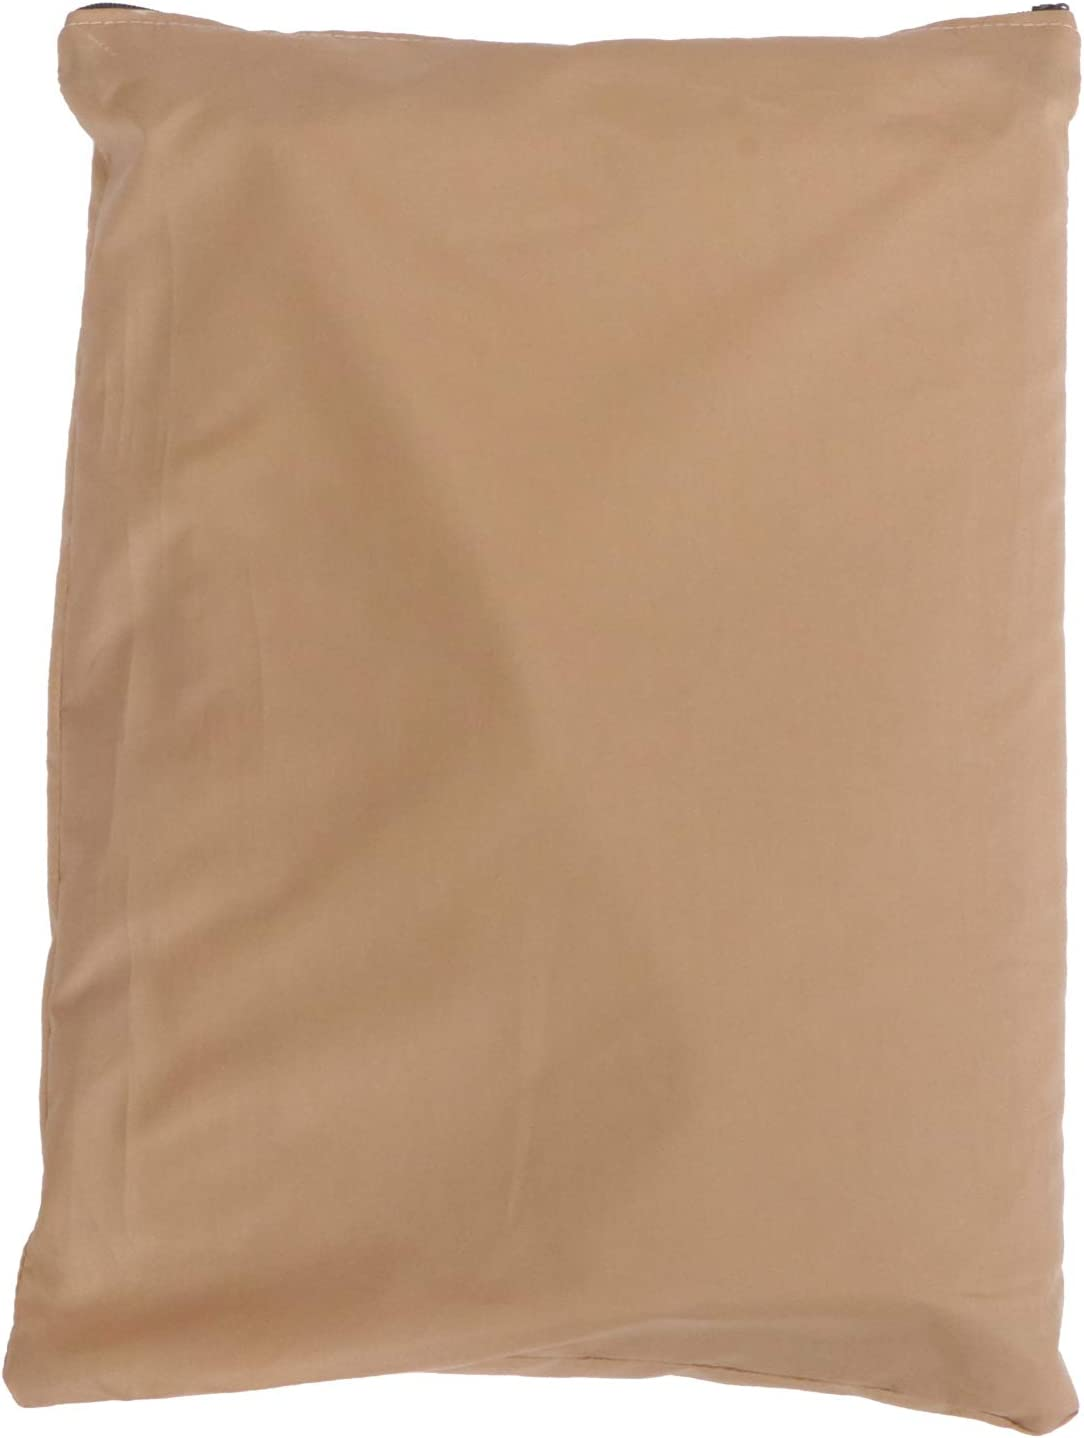 YARNOW Lawn Tractor Leaf Bag Reusable Collapsible Garden Leaves Waste Cloth Oxford Trash Collection Bag Garbage Cleanup Bag for Garden Lawn Pool Yard (Khaki)